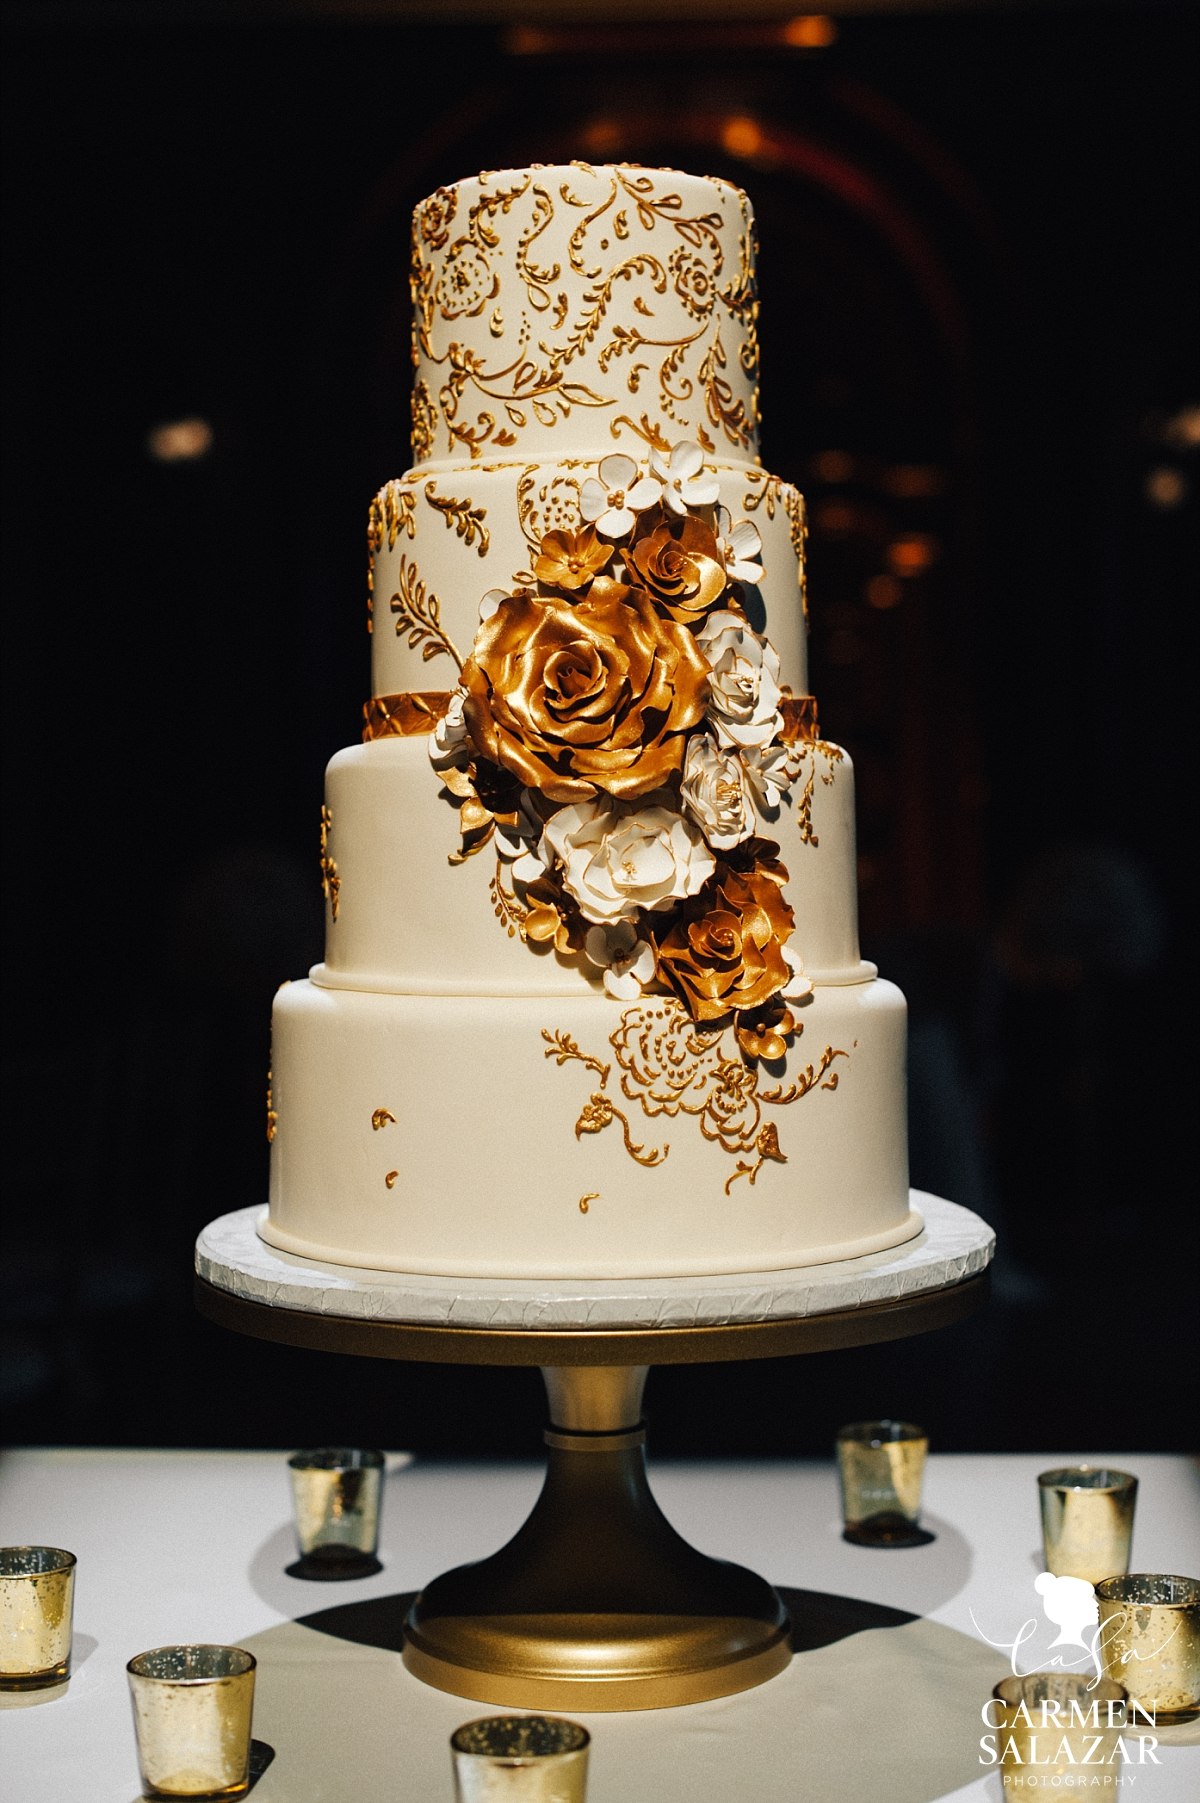 Gold gilded wedding cake with floral design - Carmen Salazar